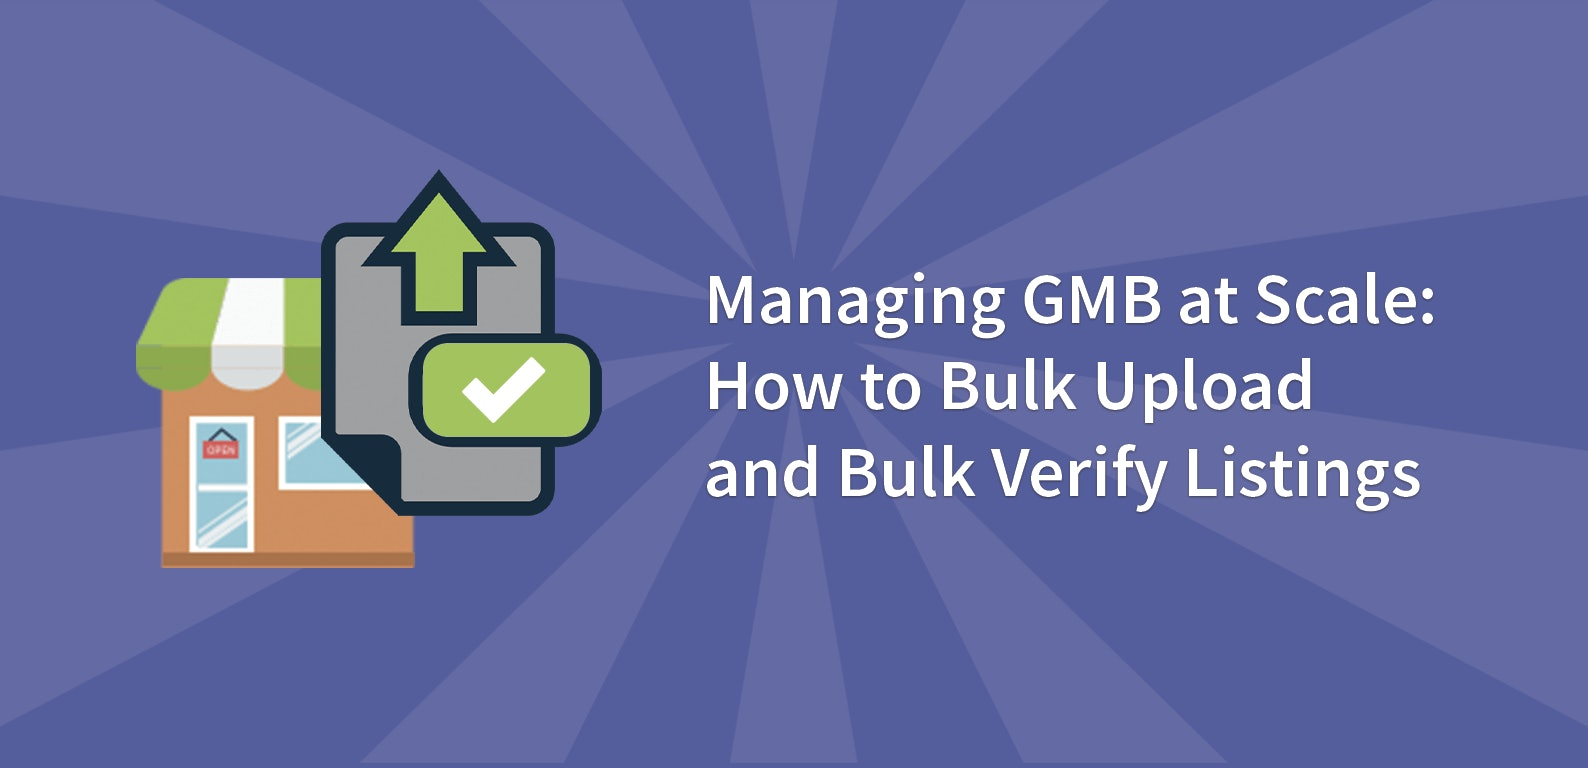 Managing GMB at Scale: How to Bulk Upload and Bulk Verify Listings